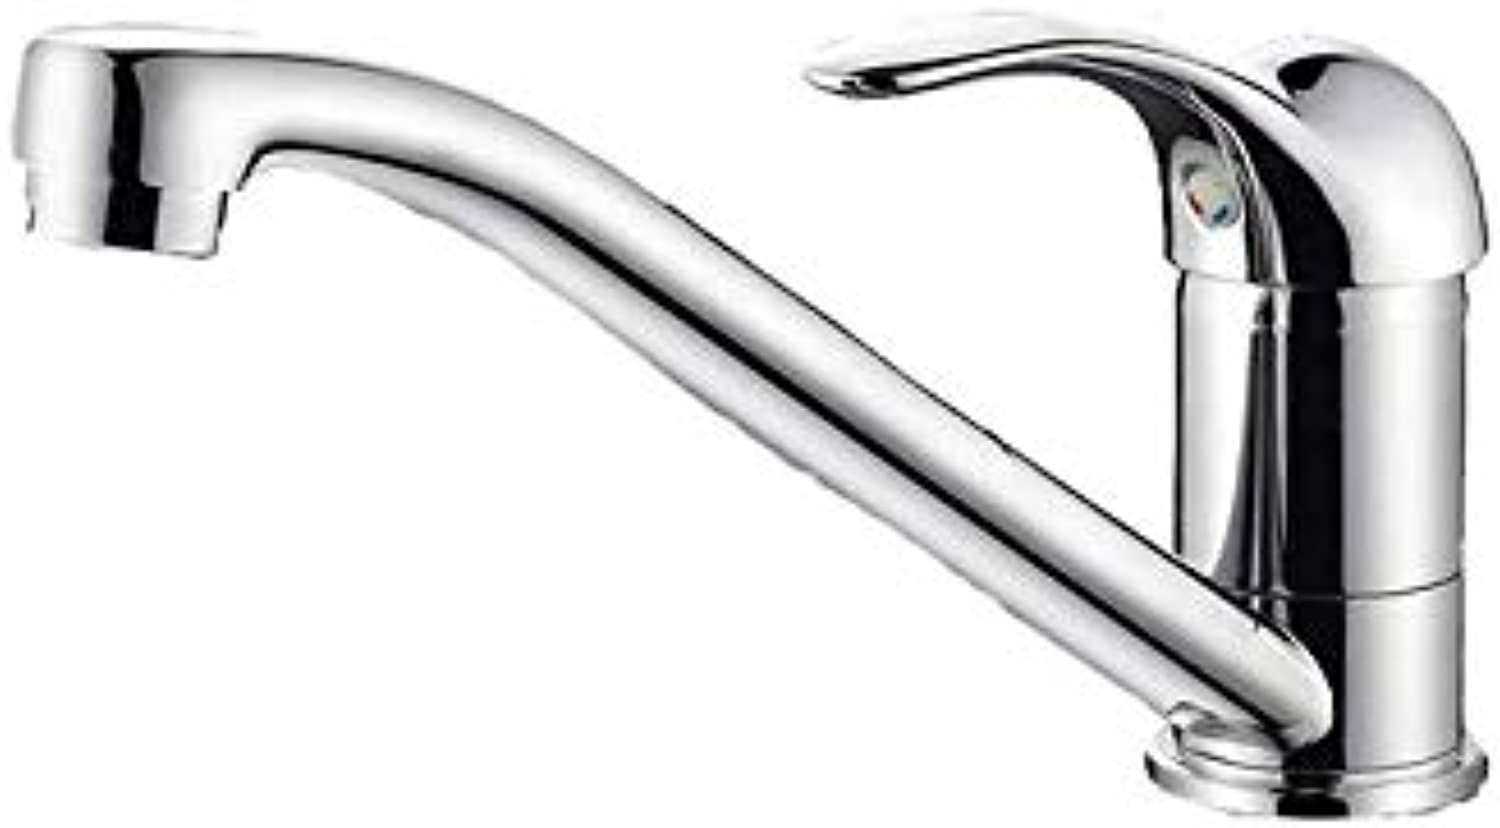 Water Tapkitchen Faucet Sink Faucet Hot and Cold Copper Sink 360 Degree redatable Faucet